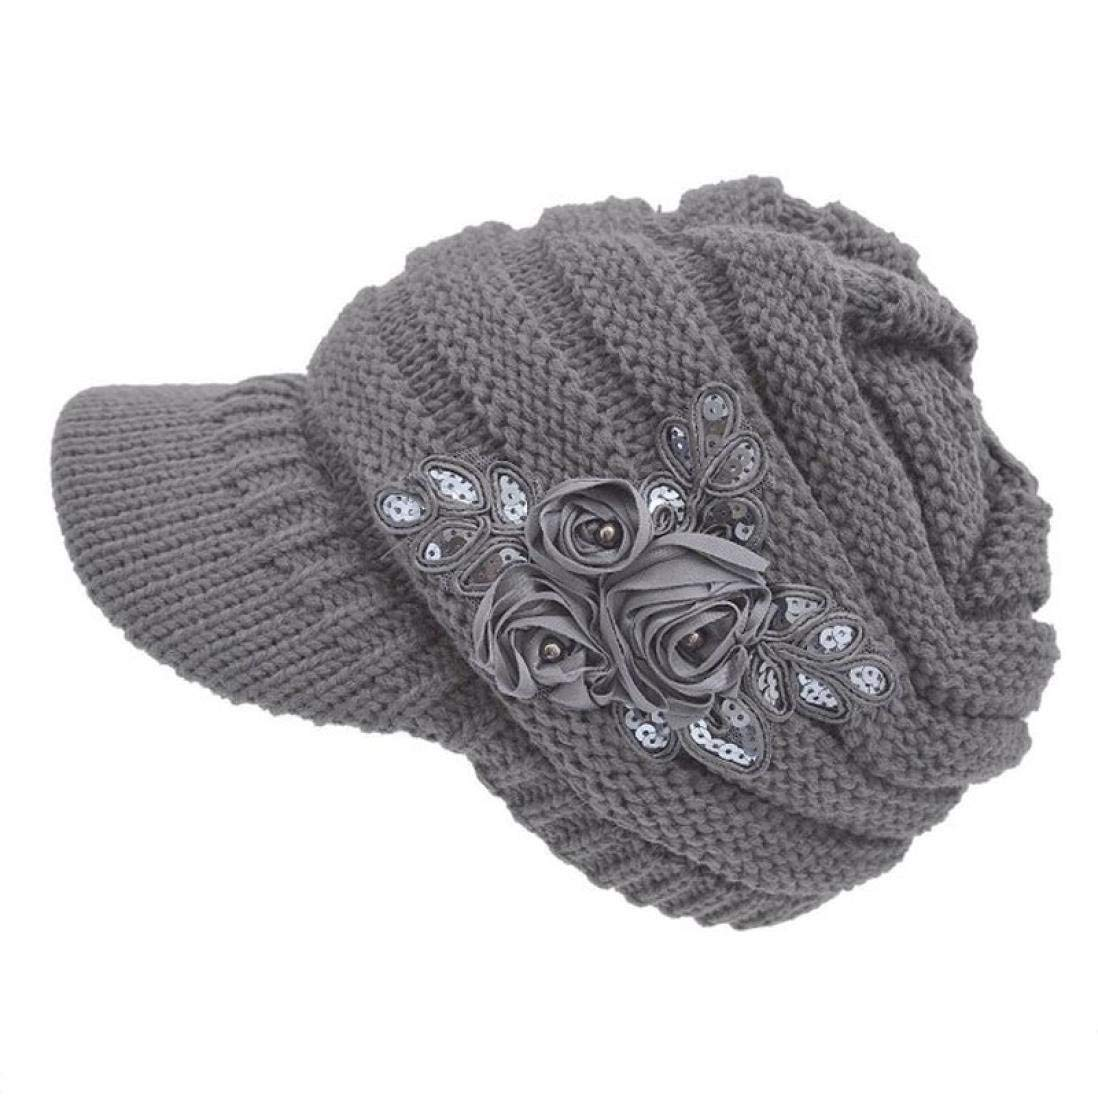 30f0c4b49c6 Cheap Acrylic Cable Knit Hat With Visor